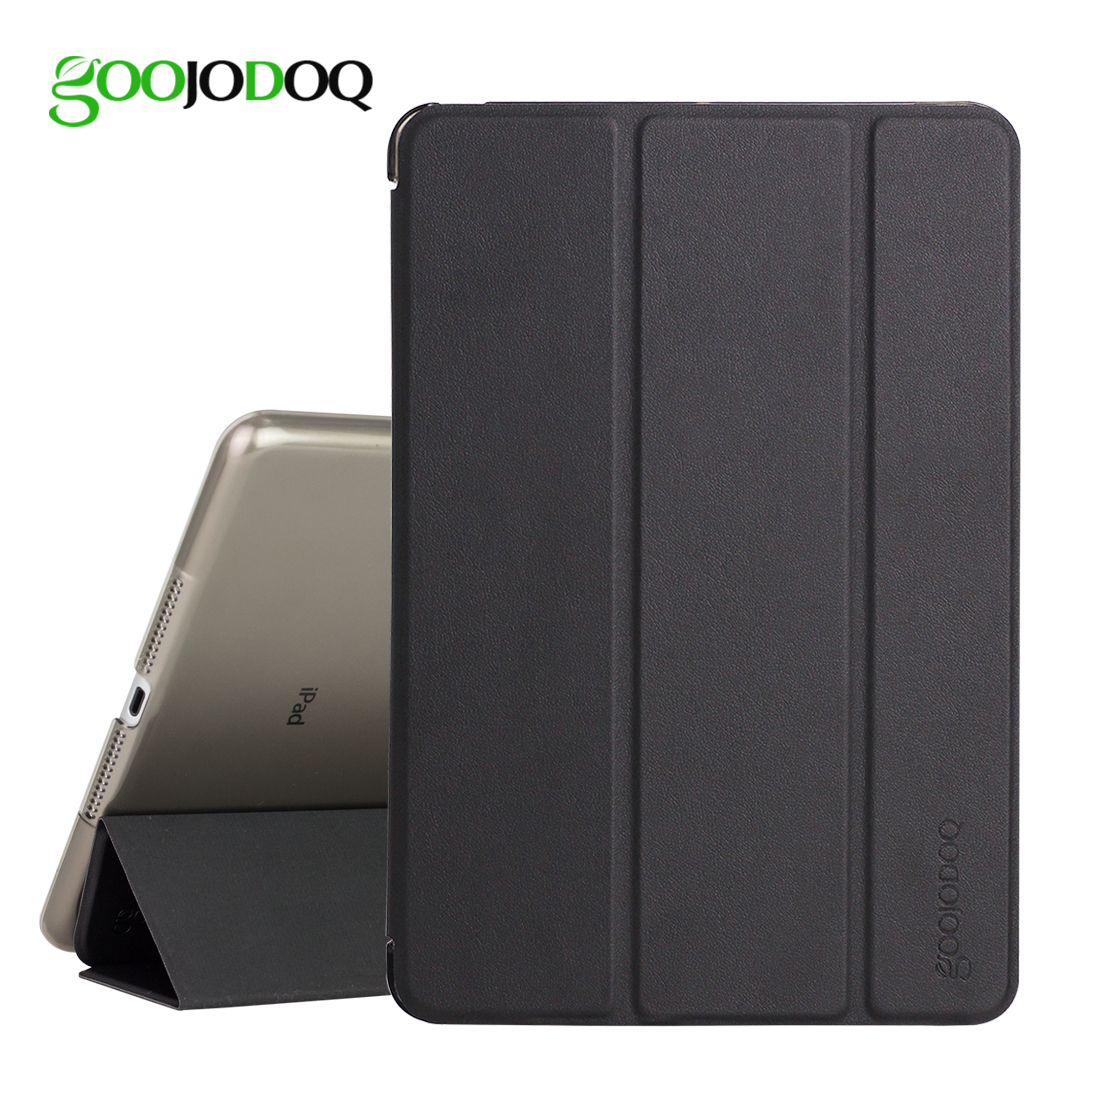 For iPad 9.7 2017 Case,GOOJODOQ Ultra Slim PU Leather Smart Cover+PC Hard Back Coque Tri-fold Stand for Apple iPad 2017 A1822 ultra slim smart case cover for apple ipad pro 12 9 2015 2016 12 9 pu leather tablet folding folio cases pc back cover